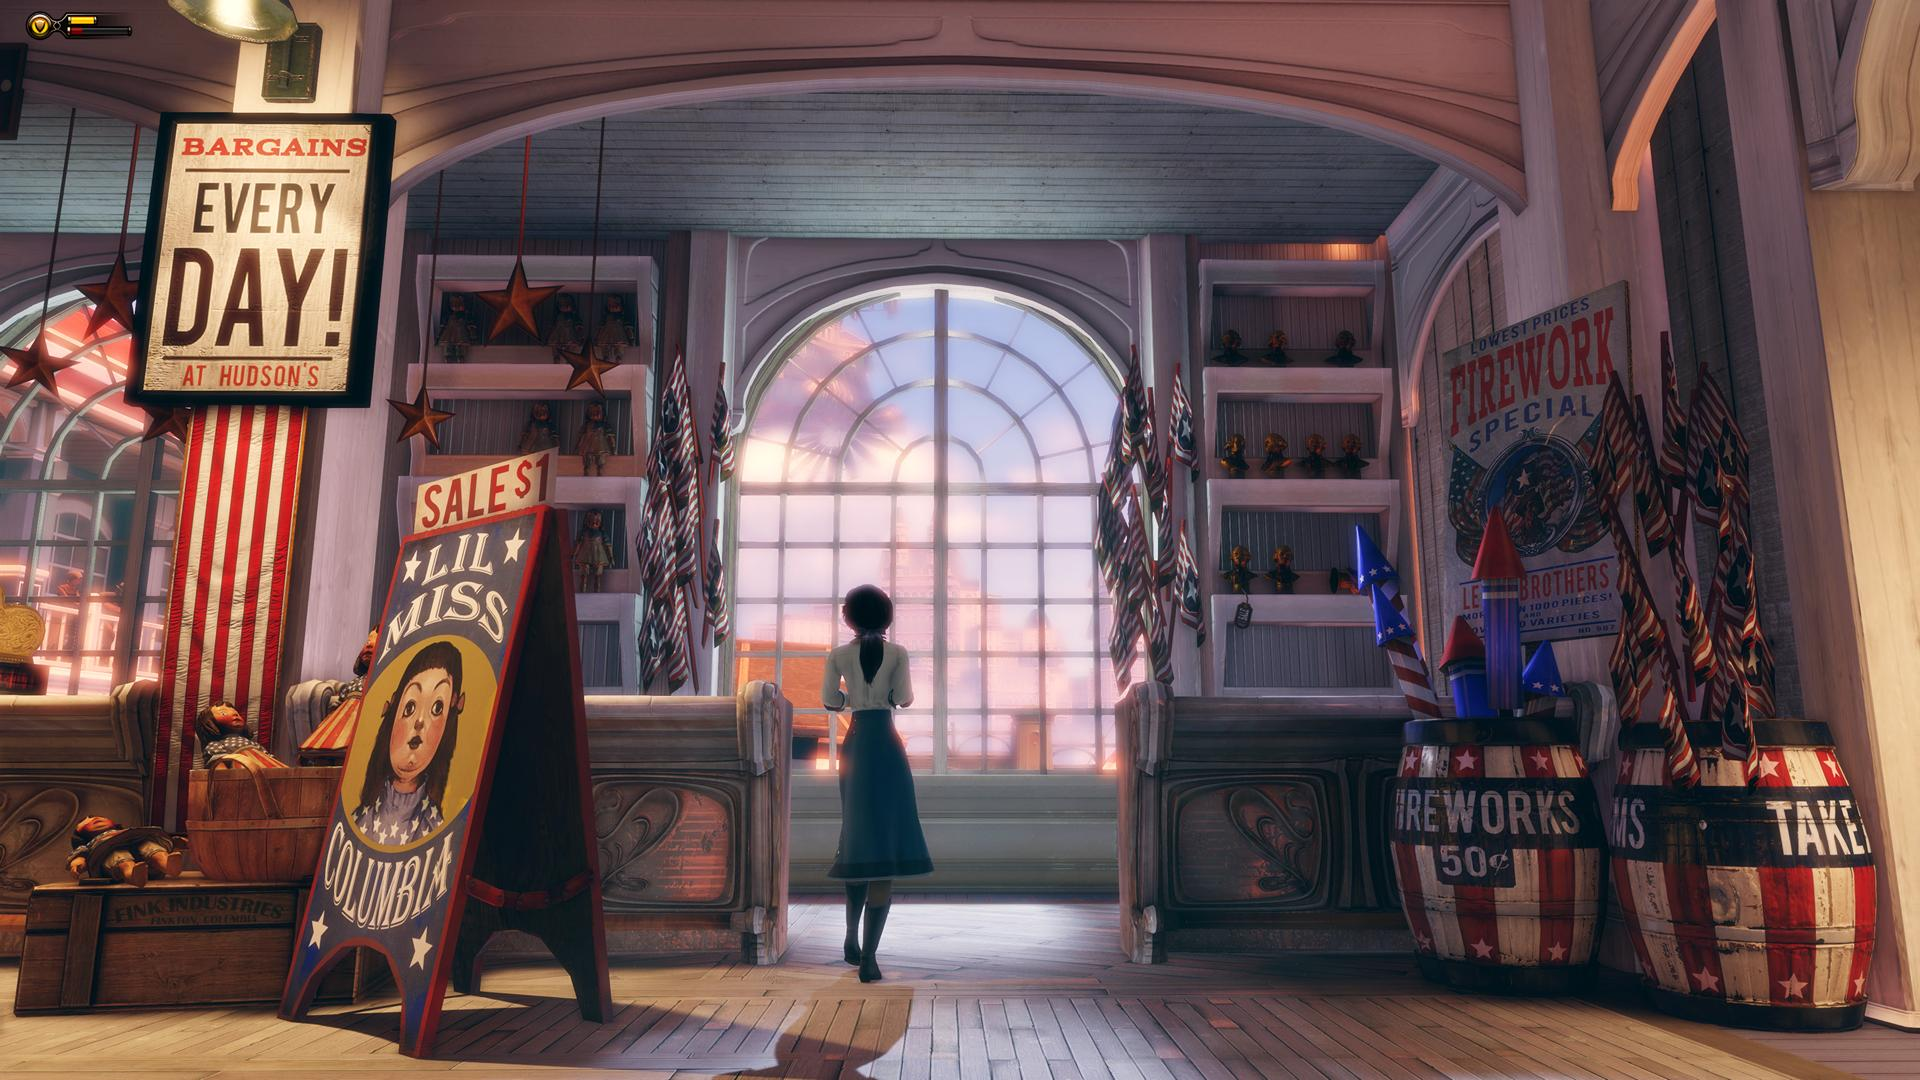 BioShock Infinite: Burial at Sea – Episode Two Available for Download Starting Today